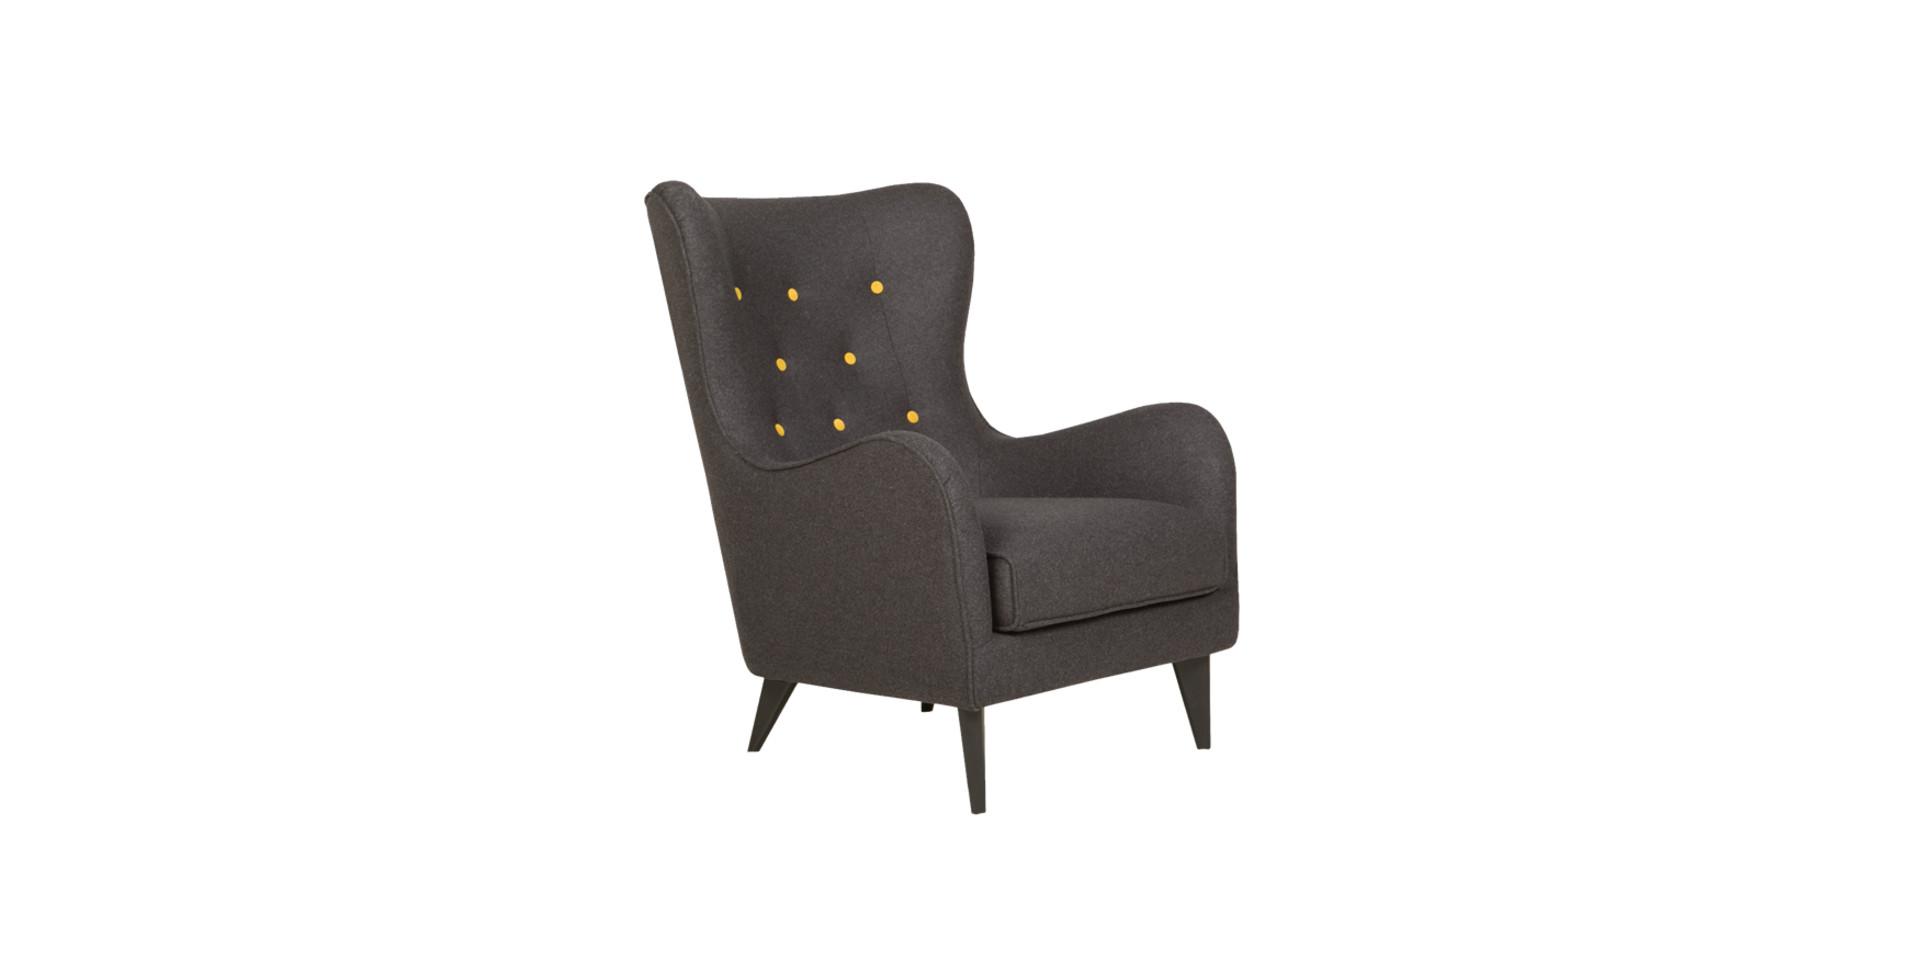 sits-pola-fauteuil-armchair_panno1002_charcoal_buttons_amstel4_mustard_2